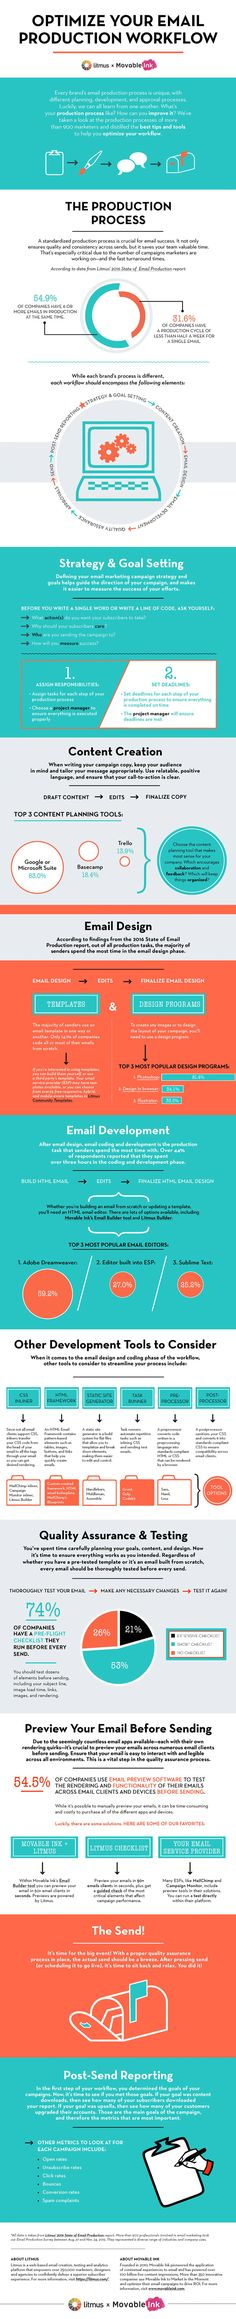 Email Marketing - How to Optimize Your Email Production Workflow [Infographic]… Email Marketing Lists, Content Marketing Strategy, Marketing Tools, Marketing Digital, Internet Marketing, Marketing Ideas, Marketing Communications, Pinterest Instagram, Social Media